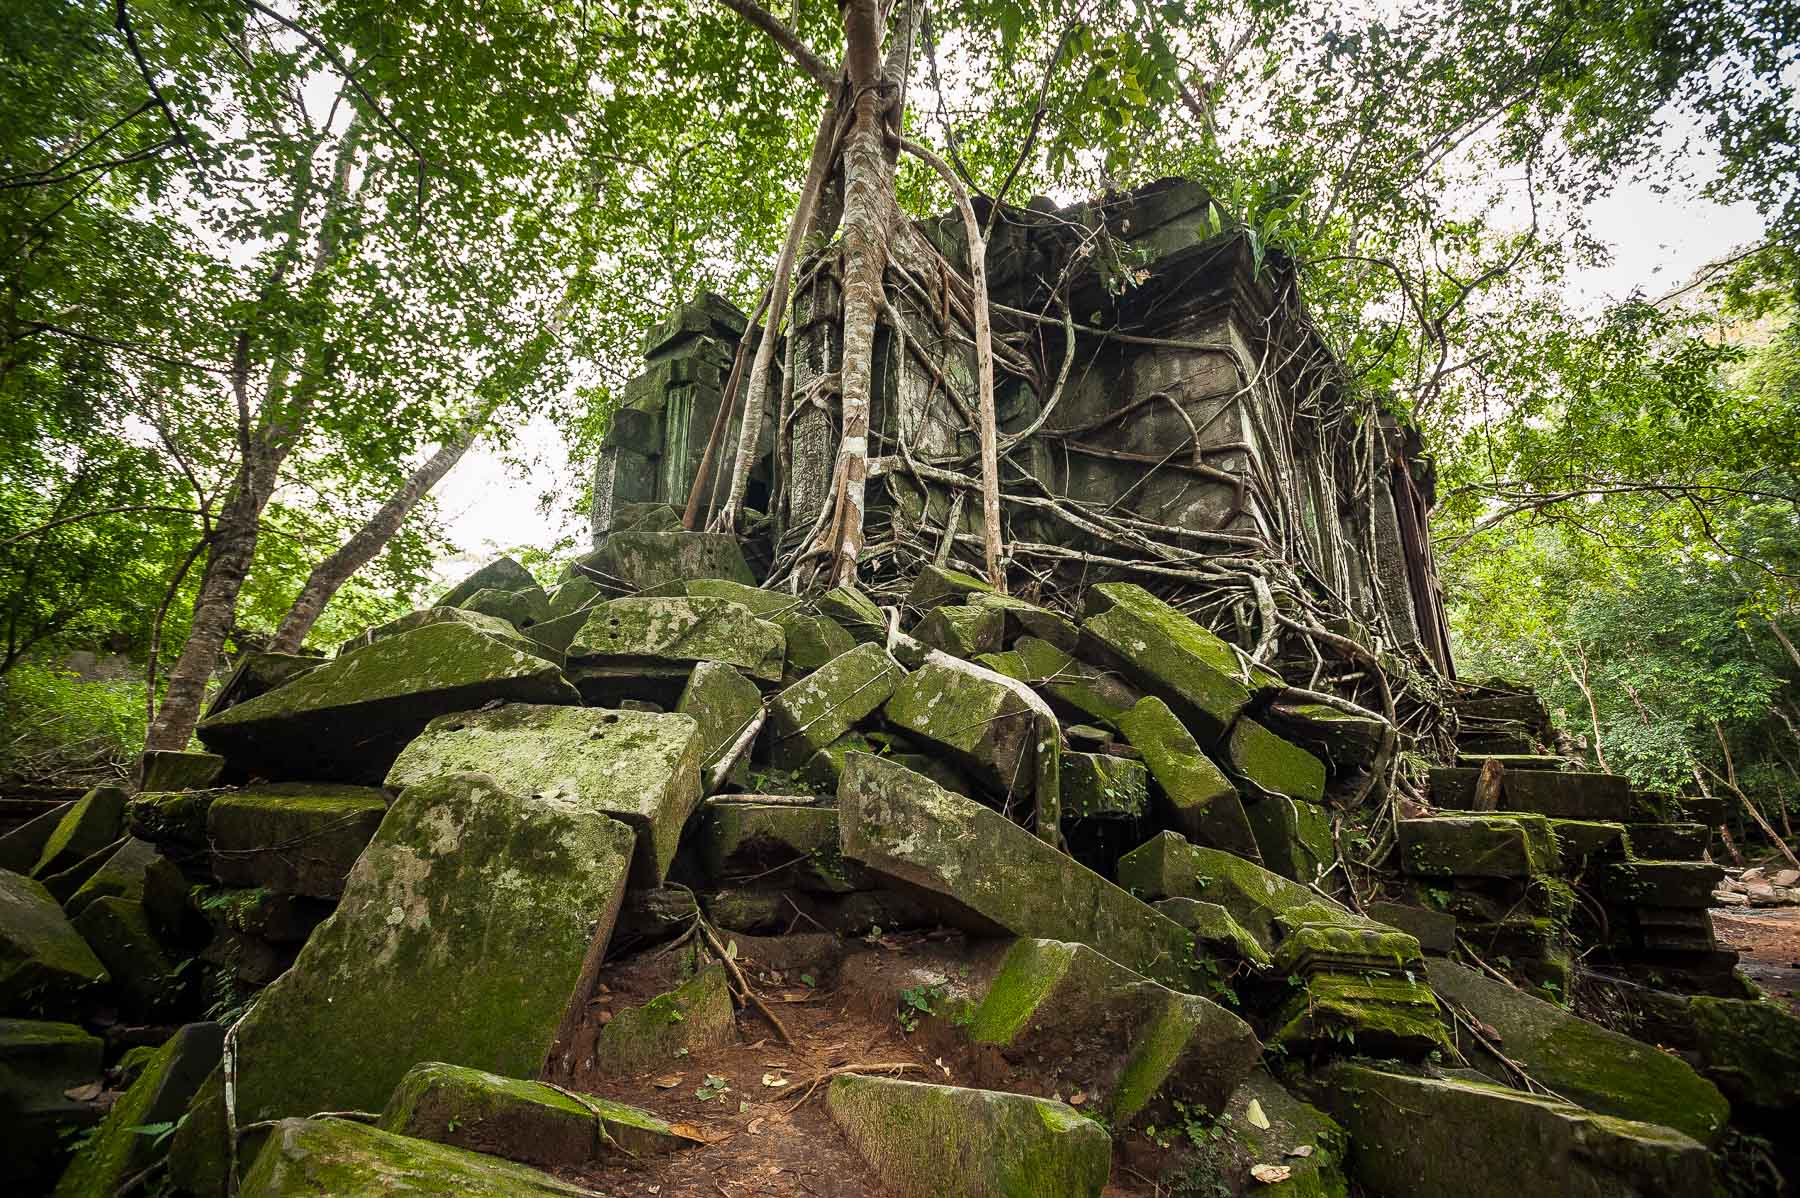 Strangler fig growing over central library structure of collapsed Ankor Wat temple of Banteay Srey, Cambodia.